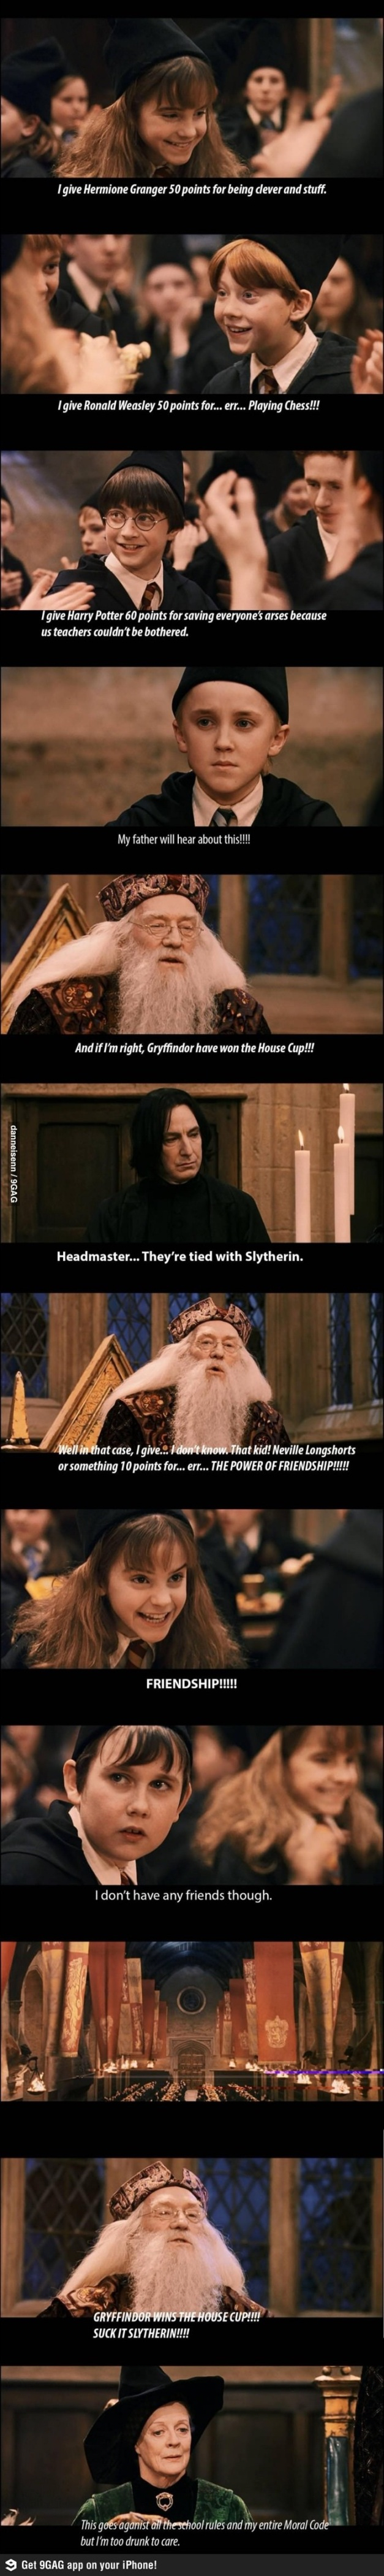 SLYTHERIN WINS THE CUP.